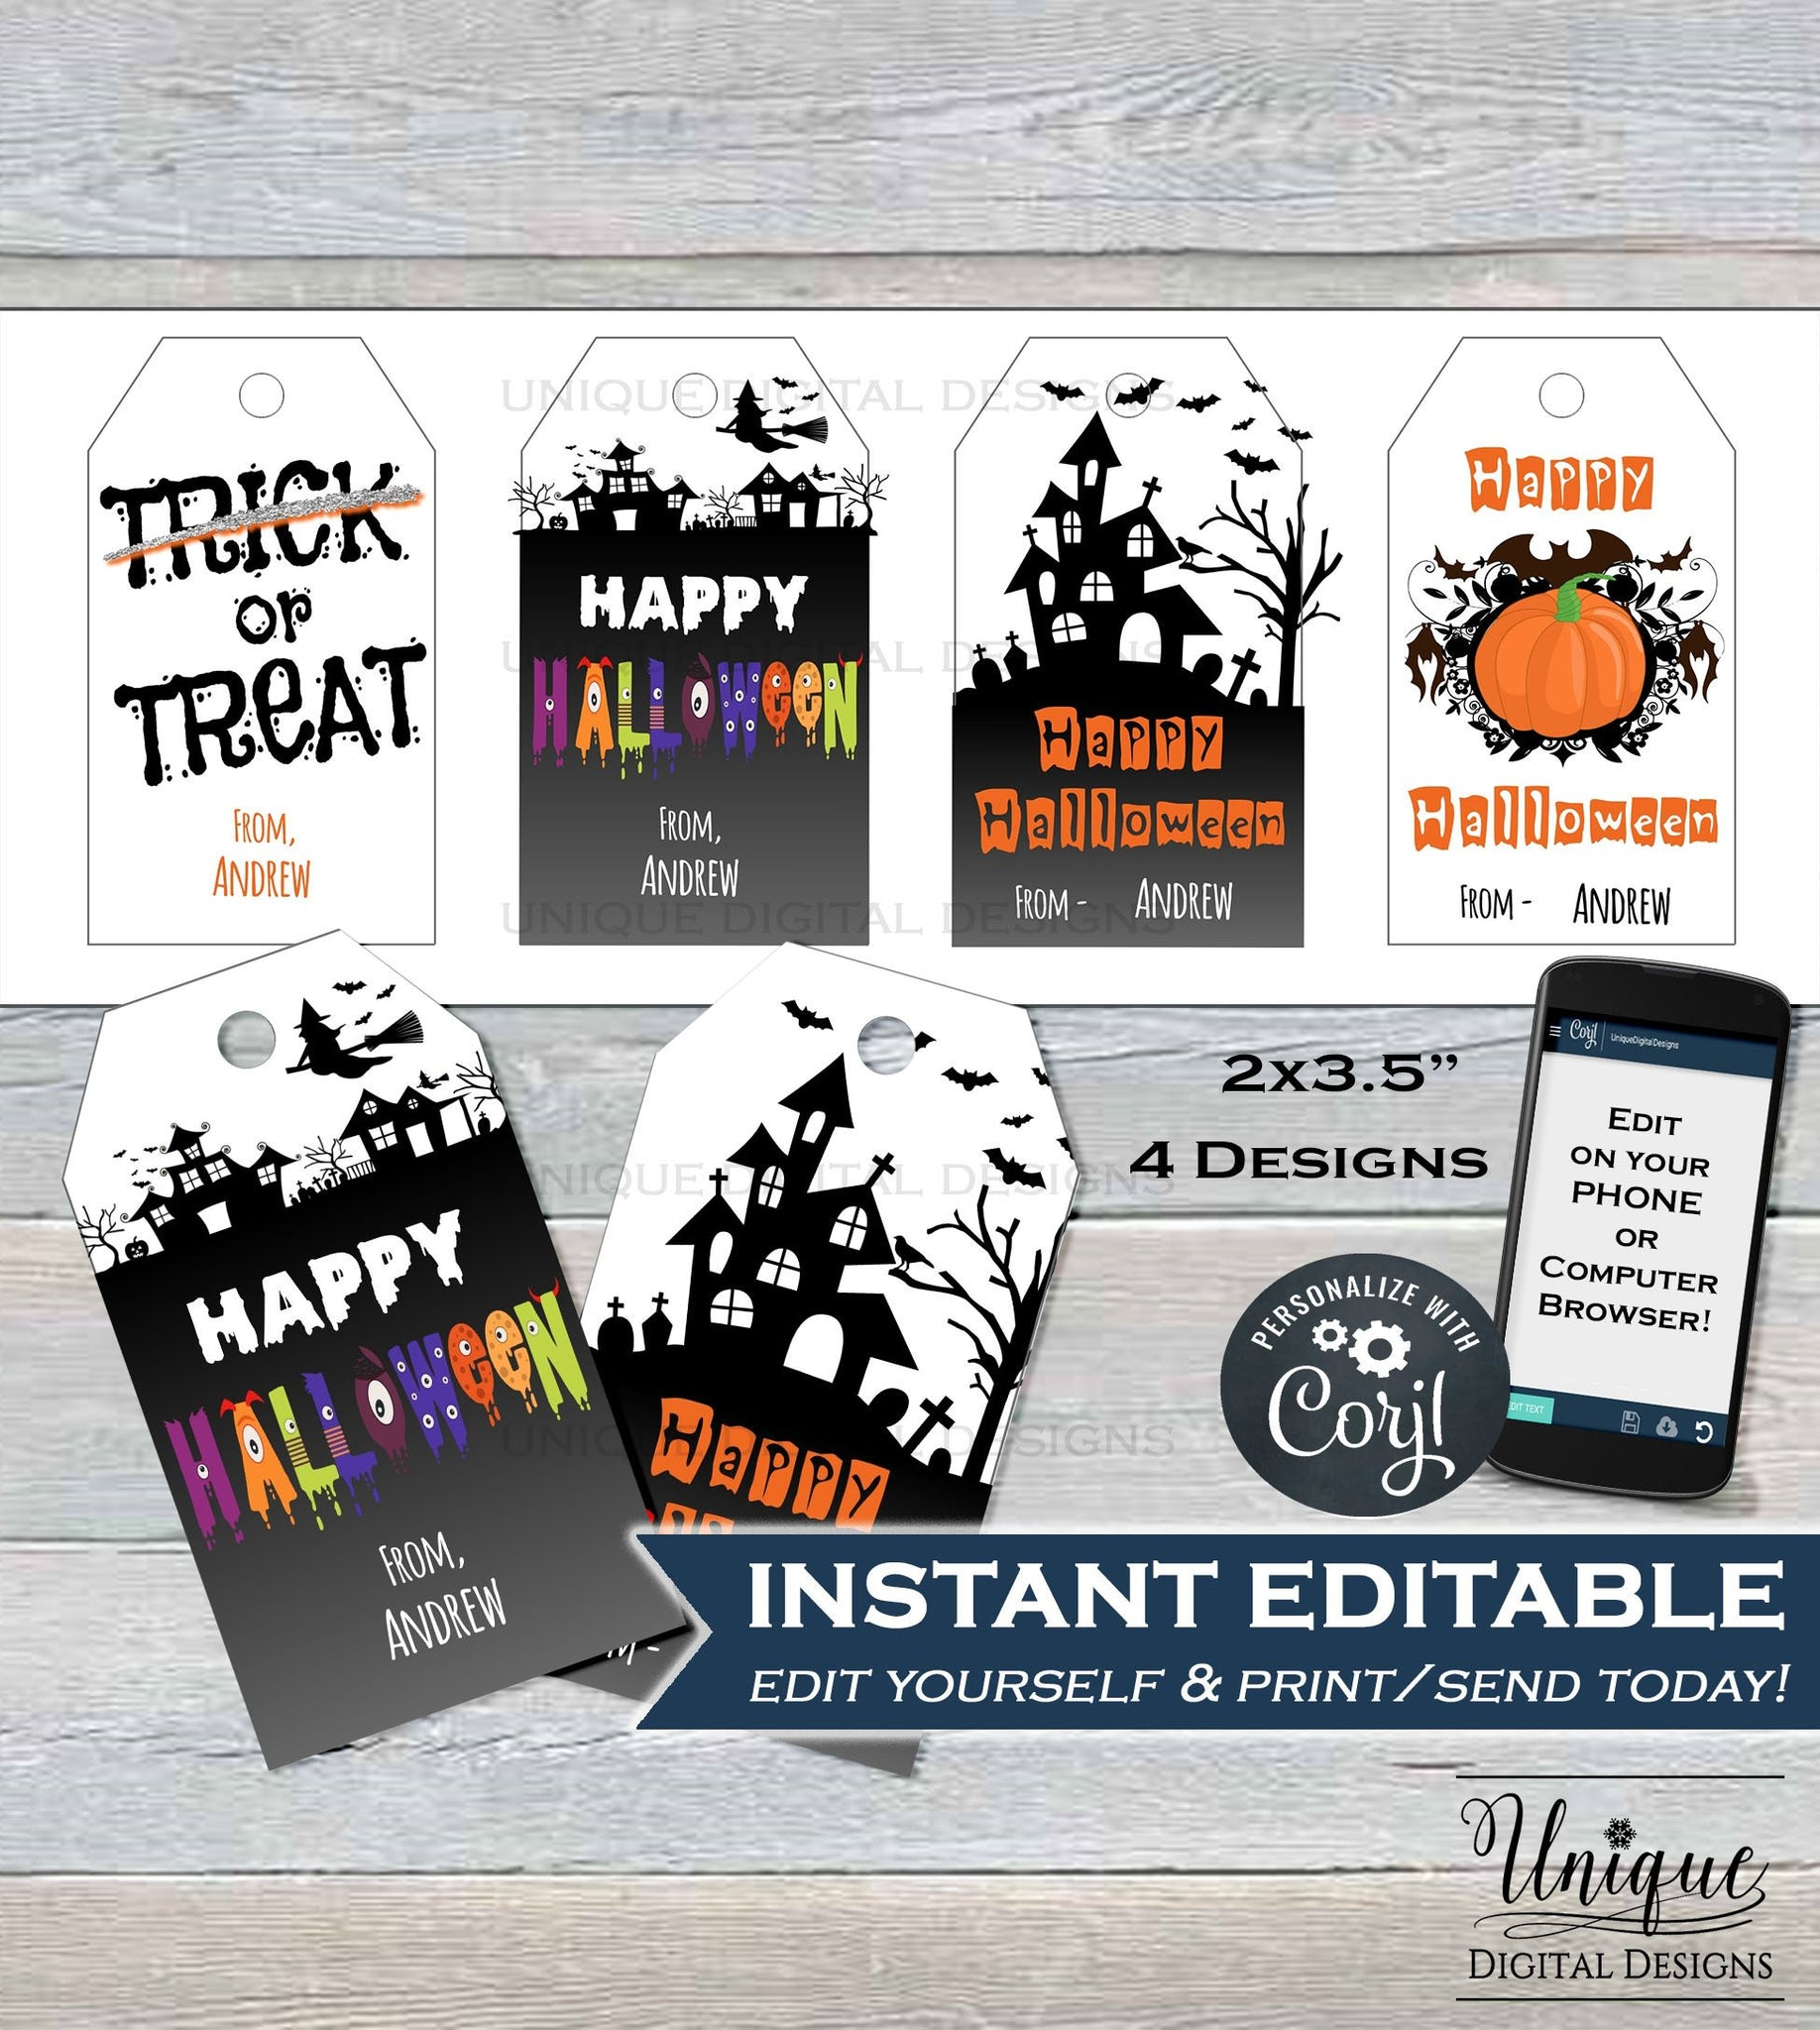 picture relating to Printable Halloween Tags titled Printable Halloween Reward Tags, Youngsters Editable Halloween Thank by yourself, Halloween Like Tags, Halloween Labels, Customized Template Quick Obtain